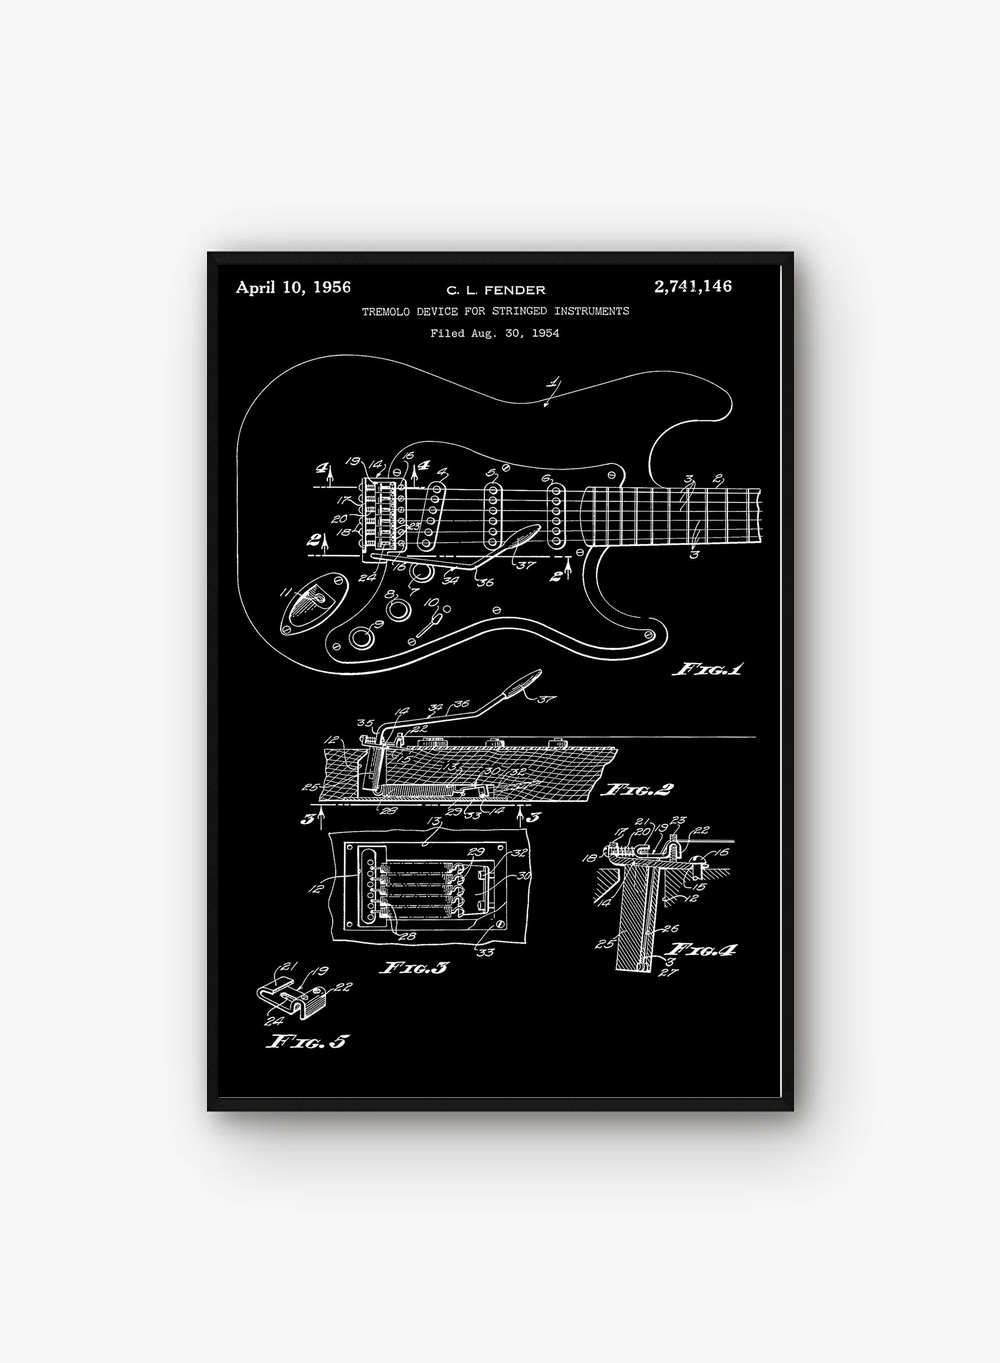 Fender Stratocaster Tremolo Wall Art Paint Wall Decor Canvas Prints Canvas Art Poster Oil Paintings No Frame